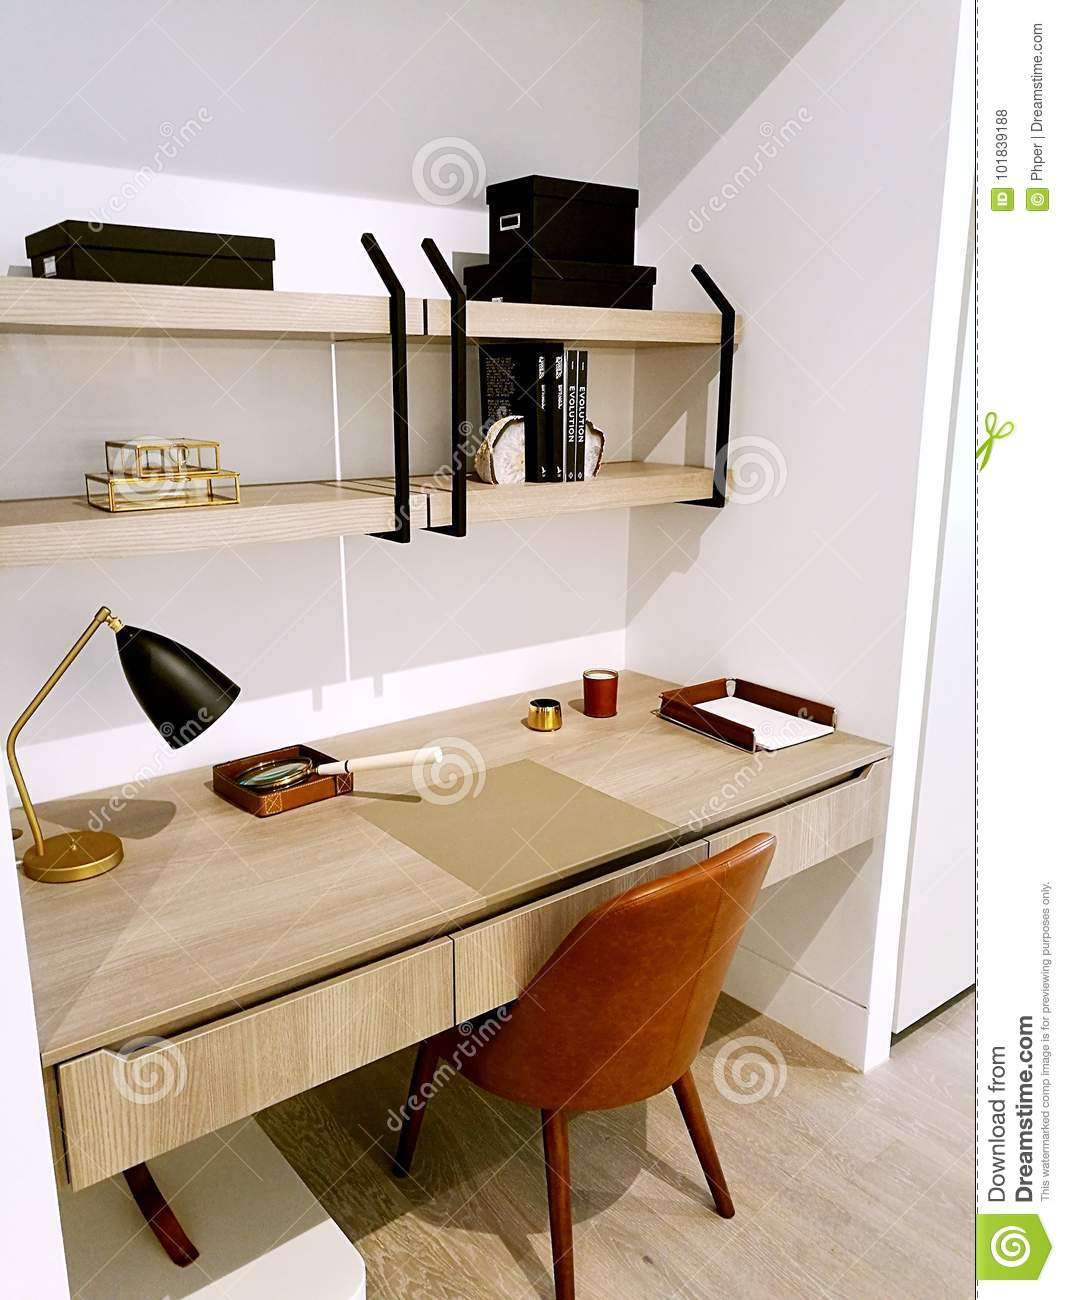 Small Study Room Ideas: Modern Interior Design Built-in Study Room Editorial Stock